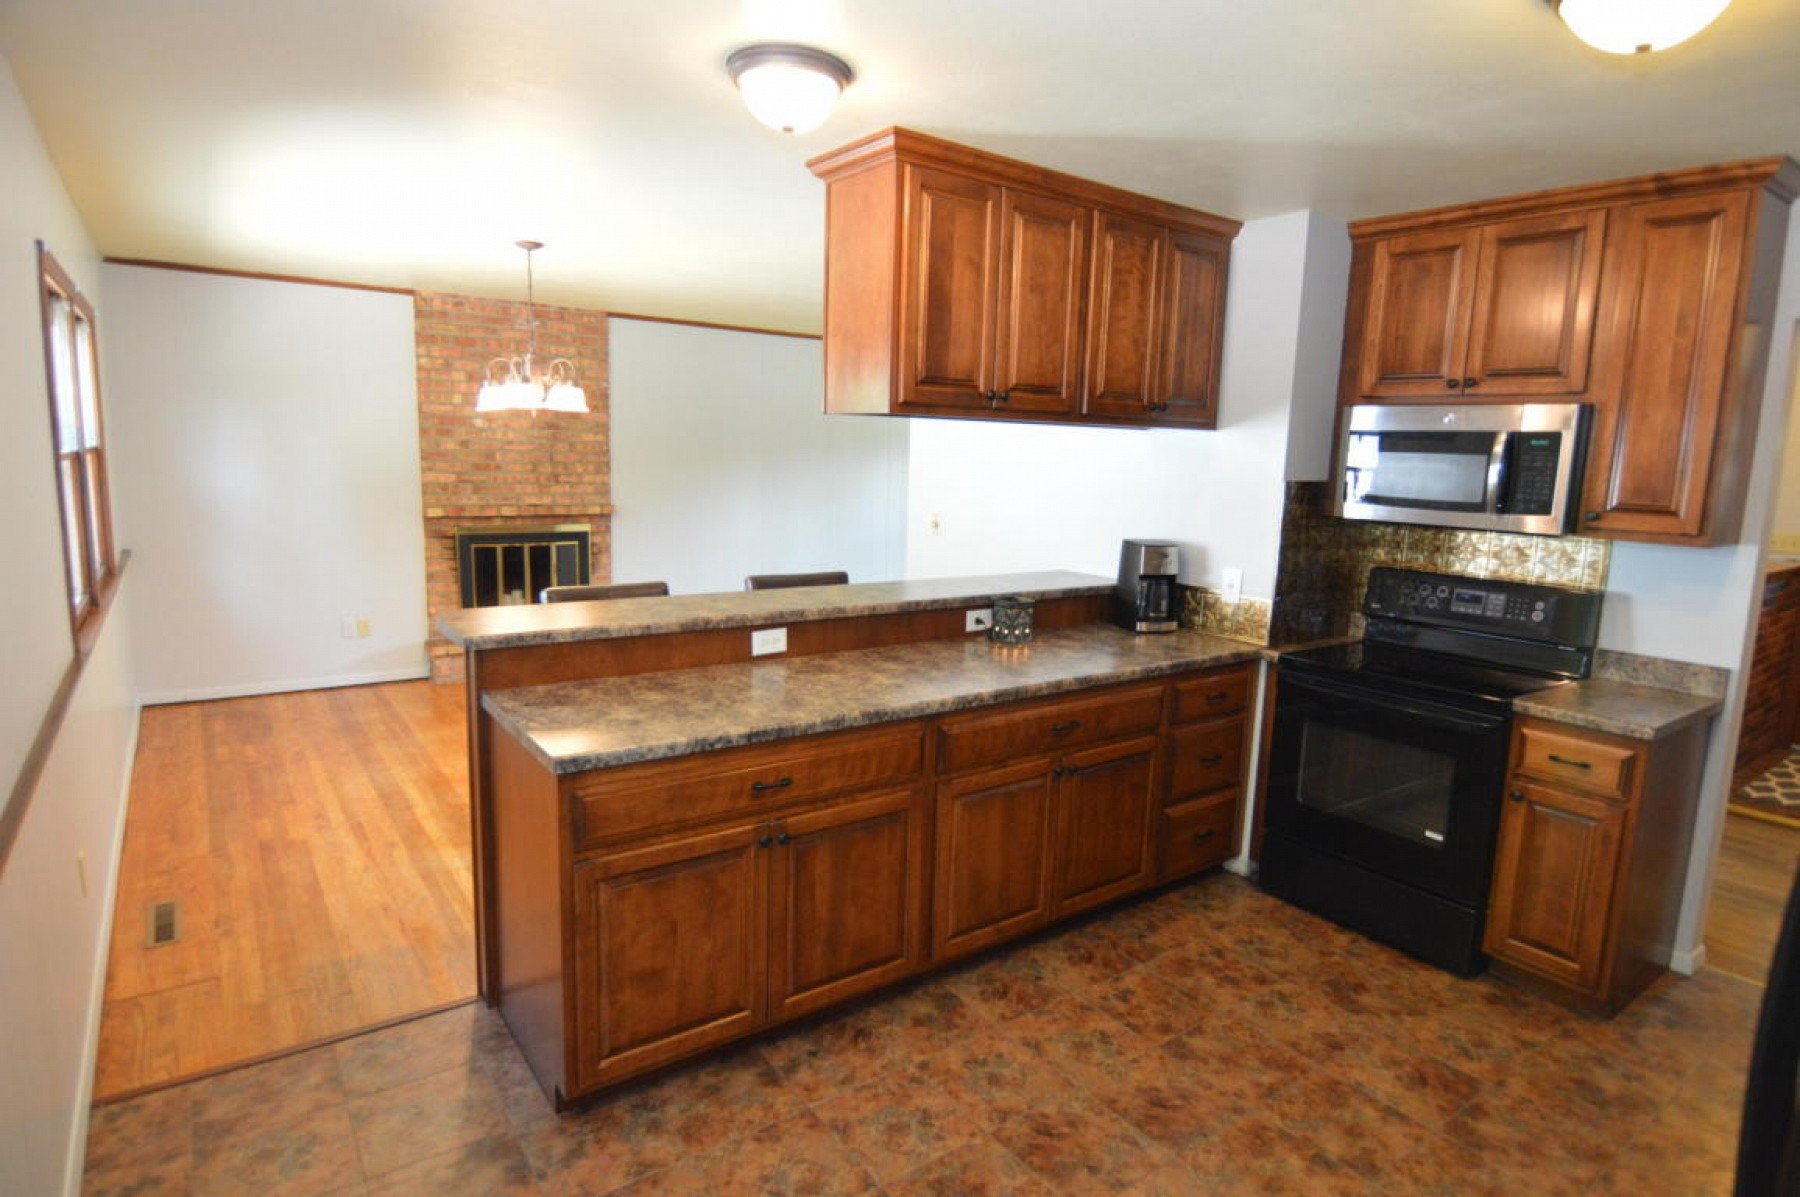 314 LincolnLaneS, Brookings, SD 57006